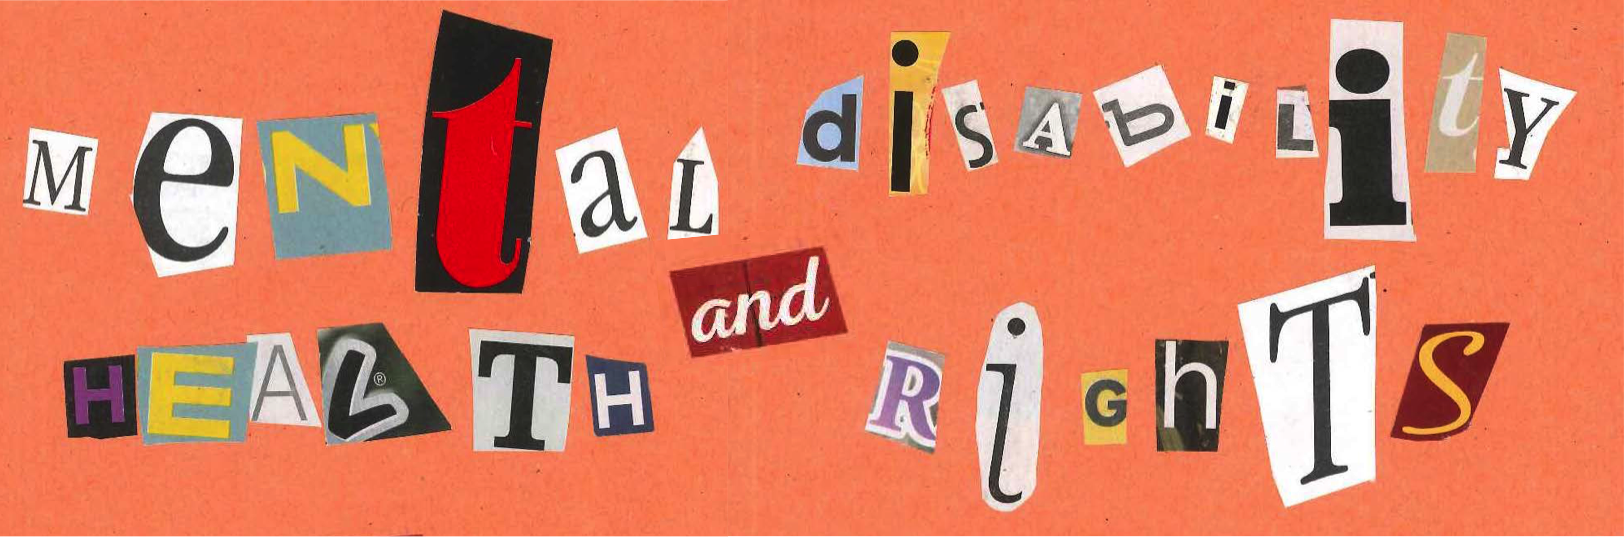 """Mental Health and Disability Rights"" written in cutout letters"